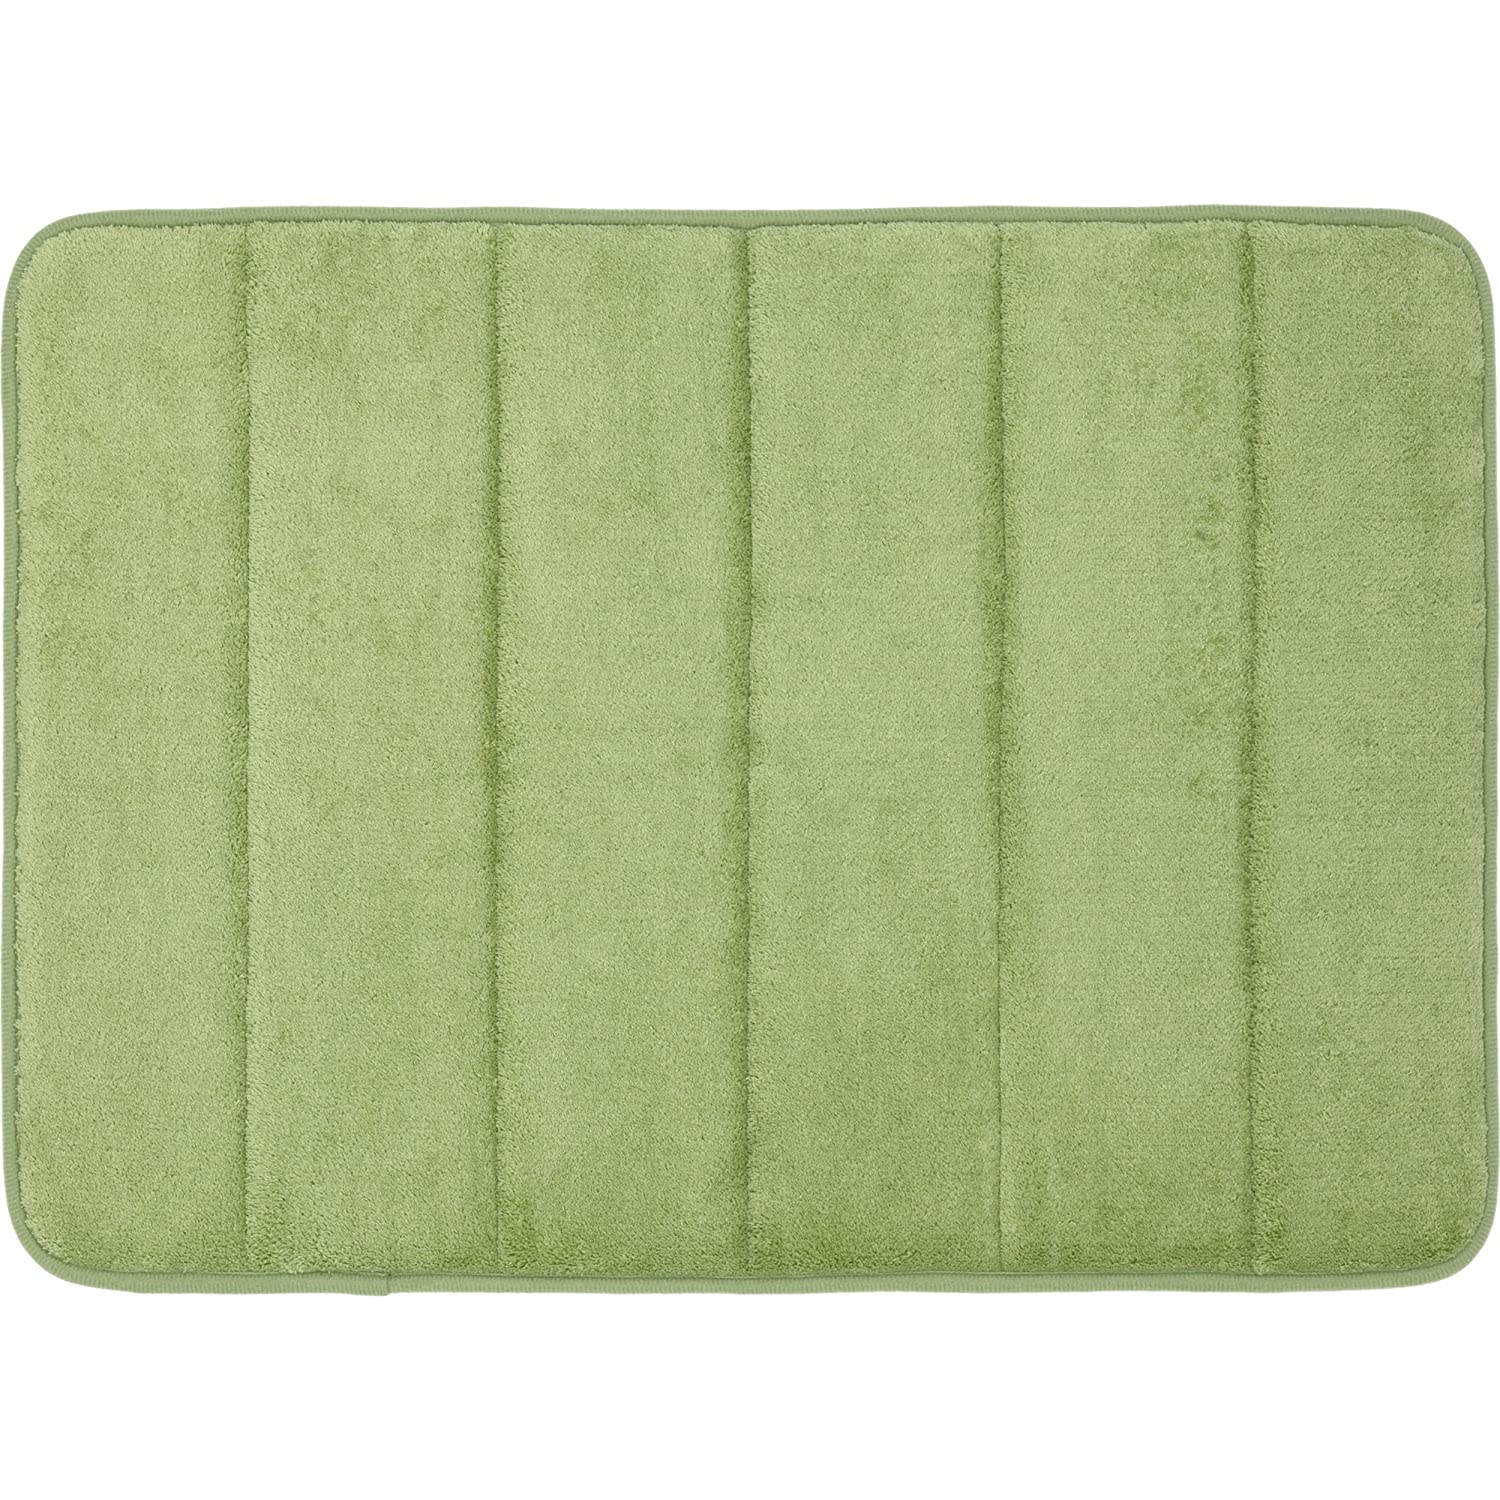 Alfa Img Showing Green Bath Mat